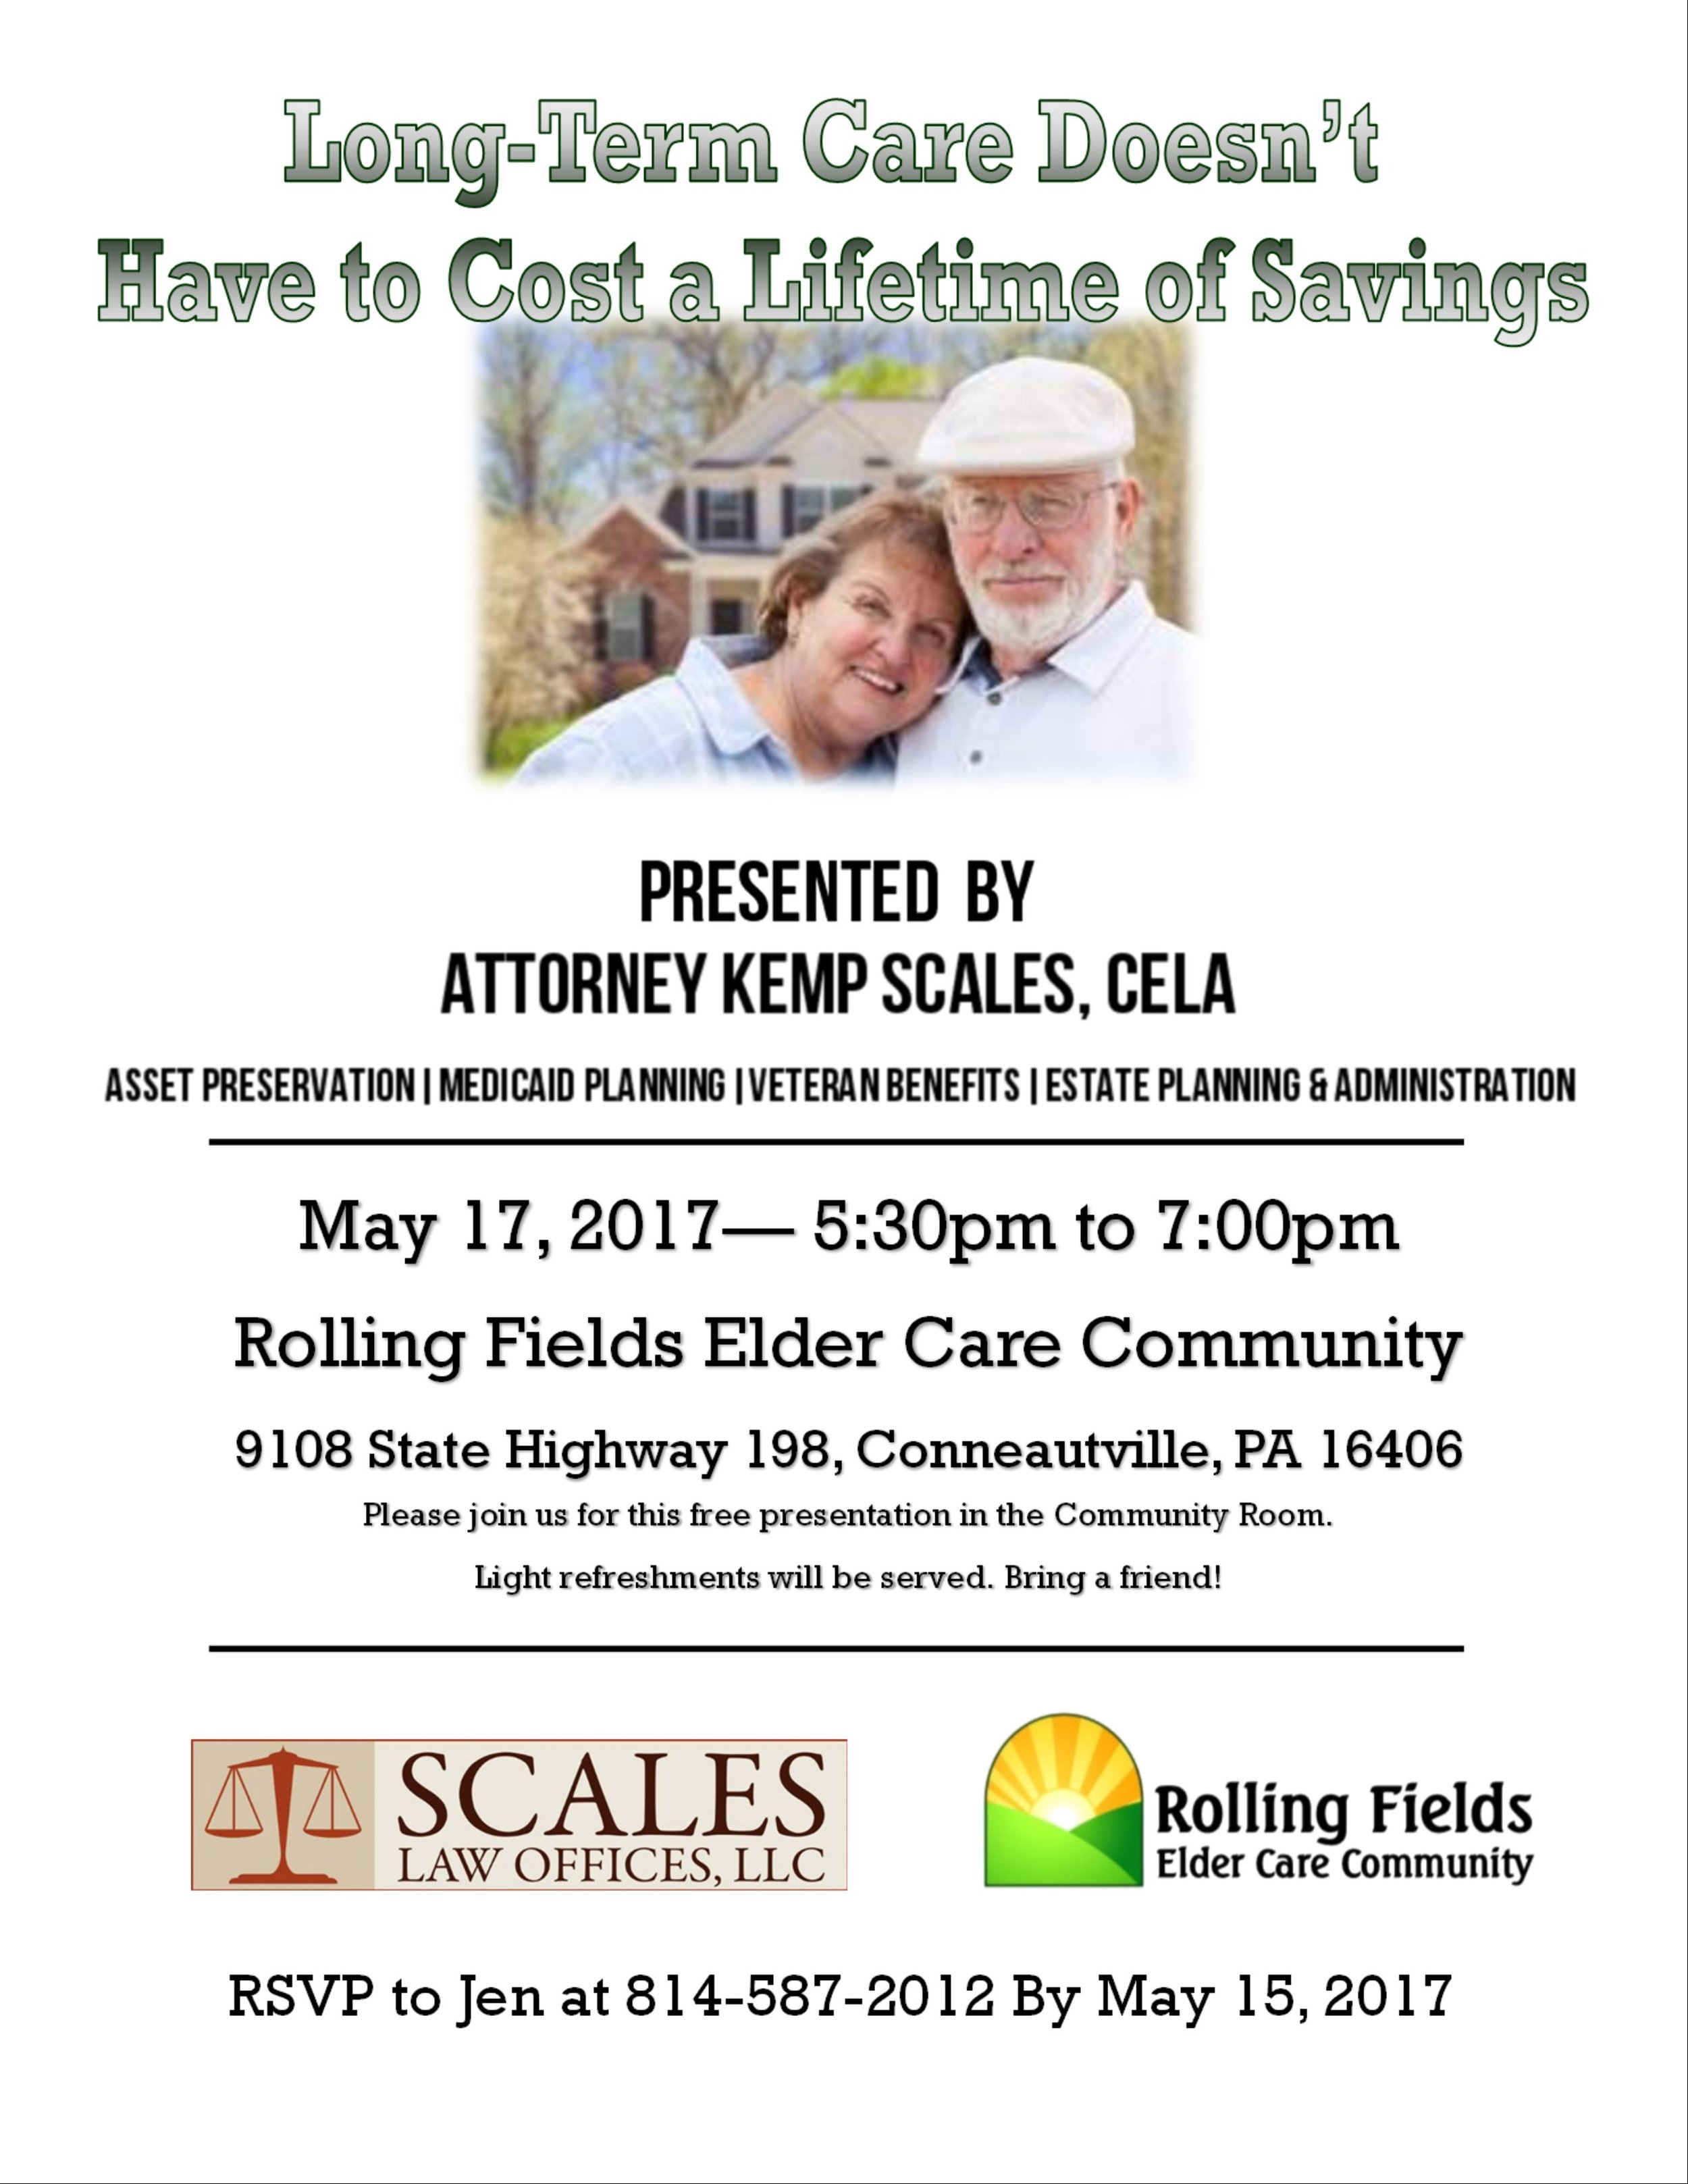 Join us on May 17th, 2017 - 5:30pm - 7:00pm at Rolling Fields Elder Care Community in the Community Room. Light refreshments will be served. Bring a friend! RSVP by May 15,2017 to Jen at 814-587-2012.